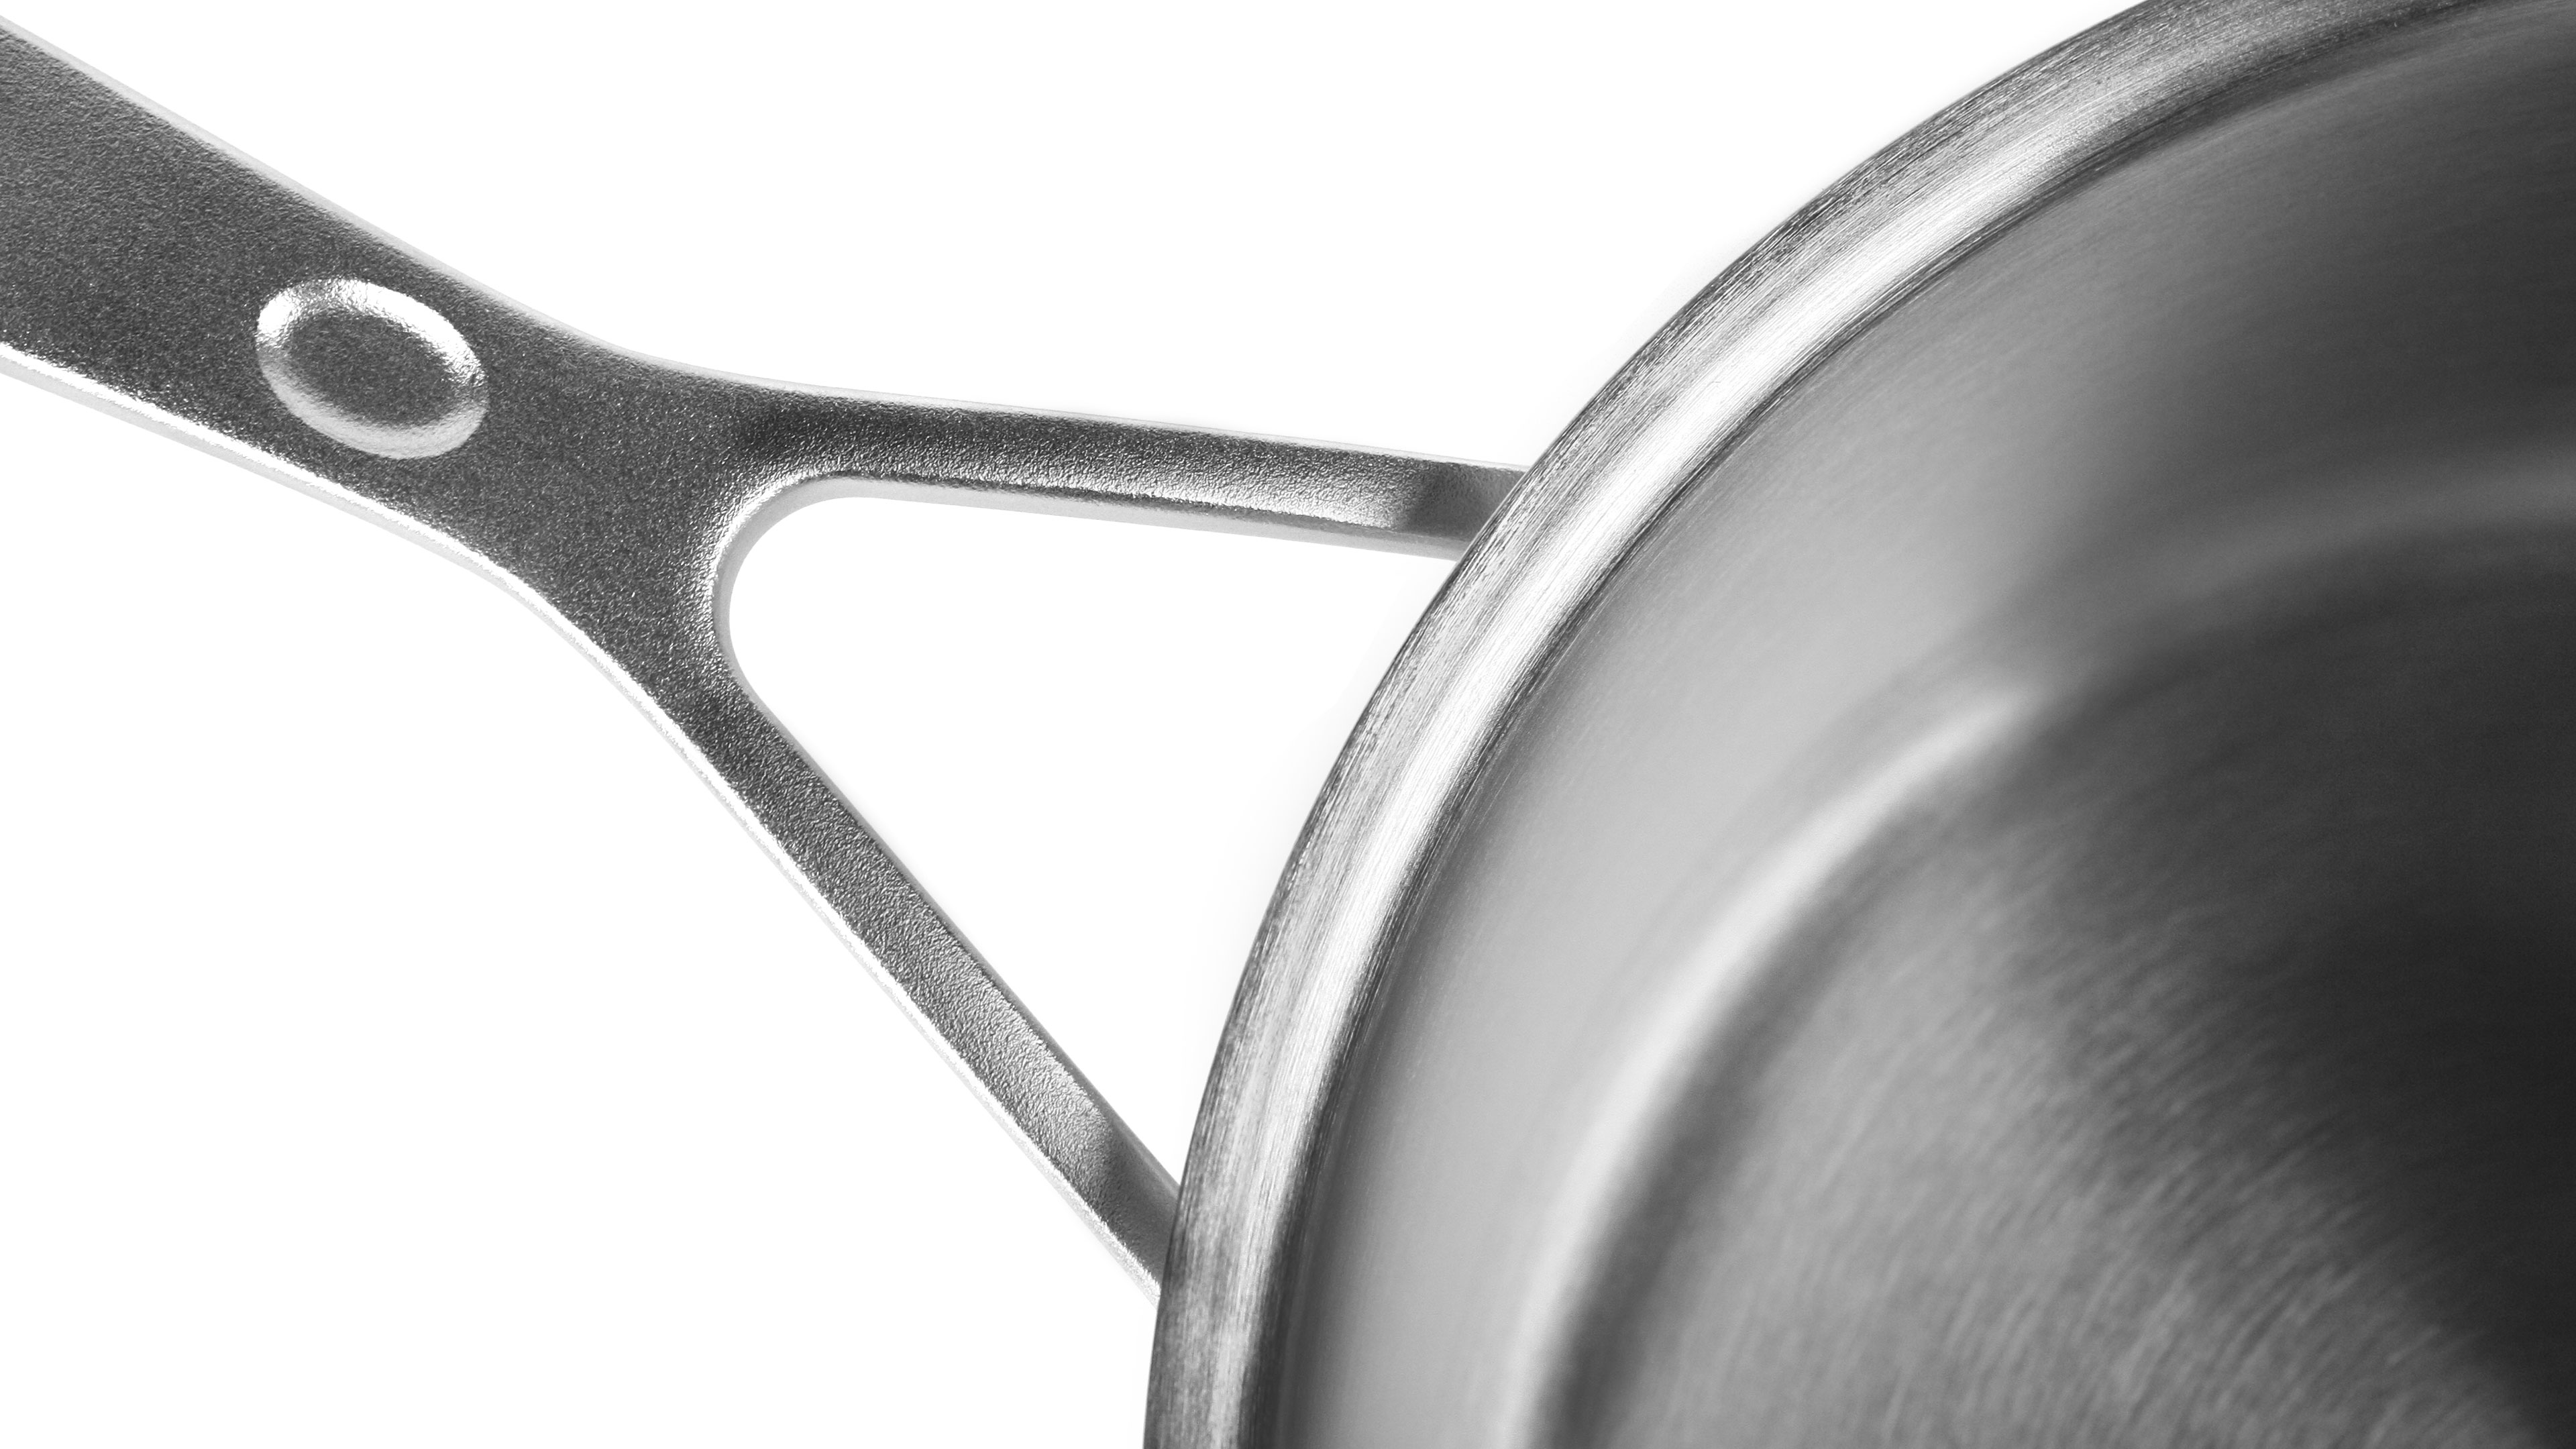 Myer Cutlery Set Demeyere Industry5 Stainless Steel Cookware Set 10 Piece